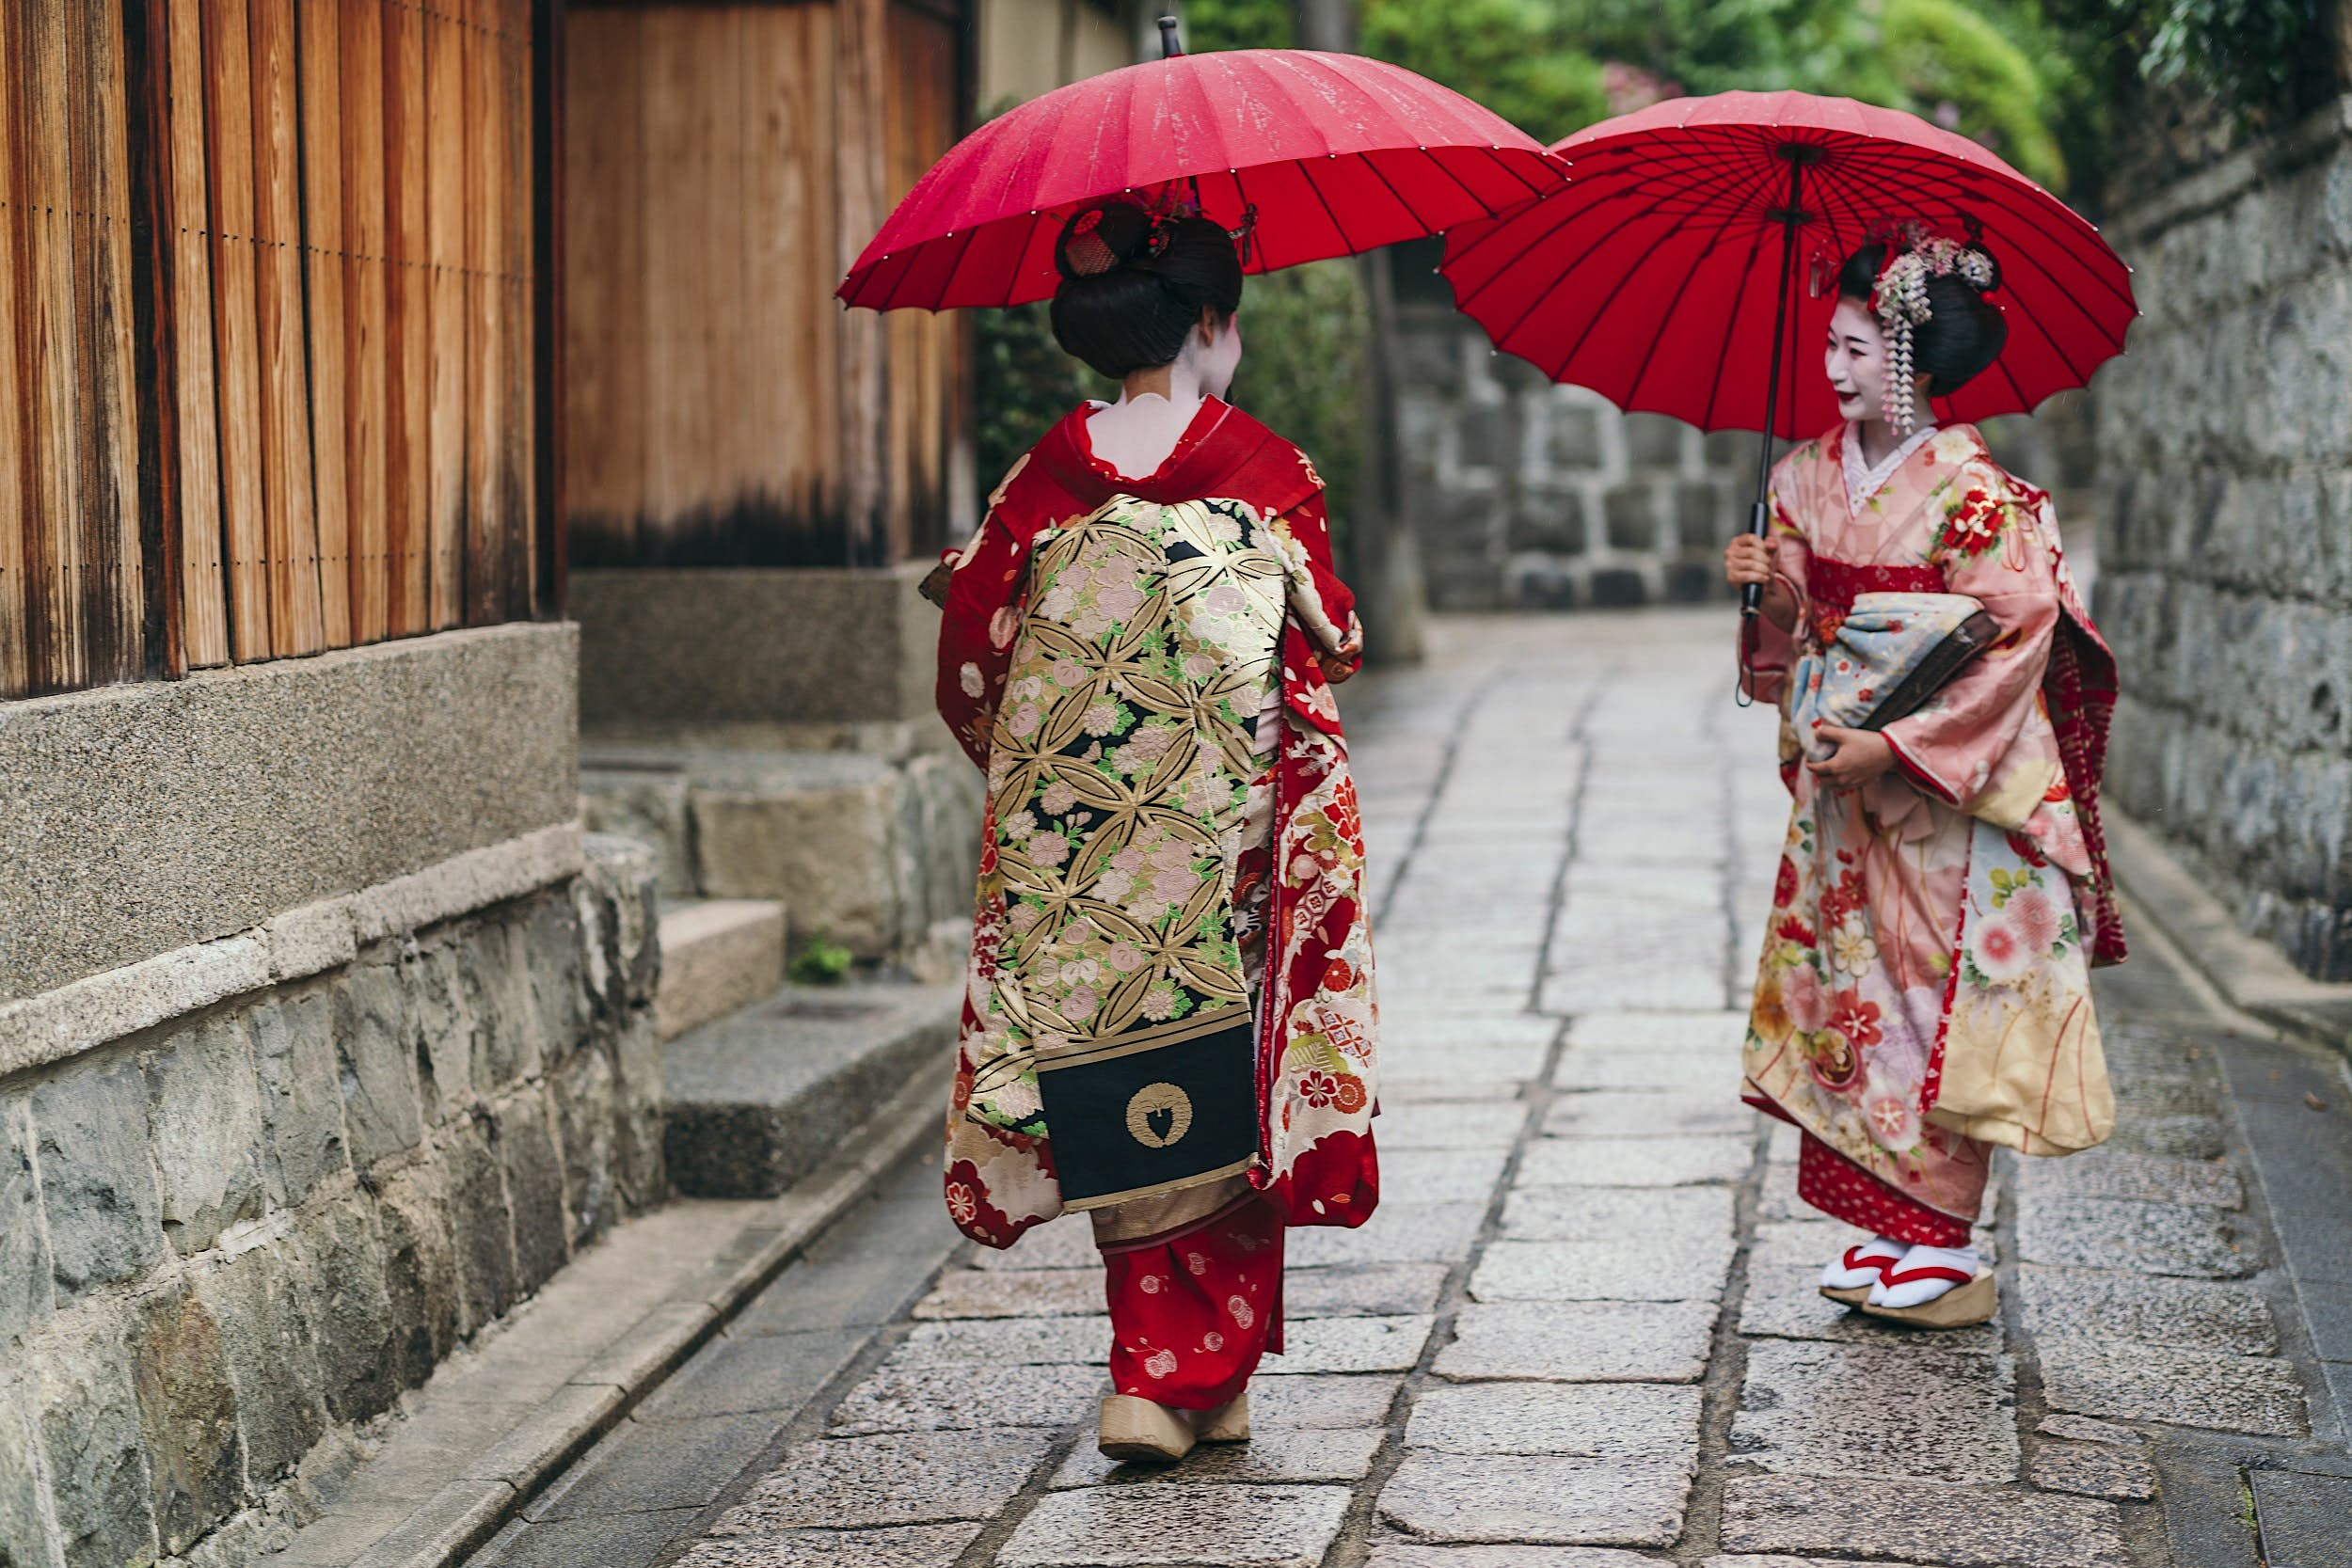 Maiko geishas with red umbrellas walking on a street of Gion in Kyoto, Japan.